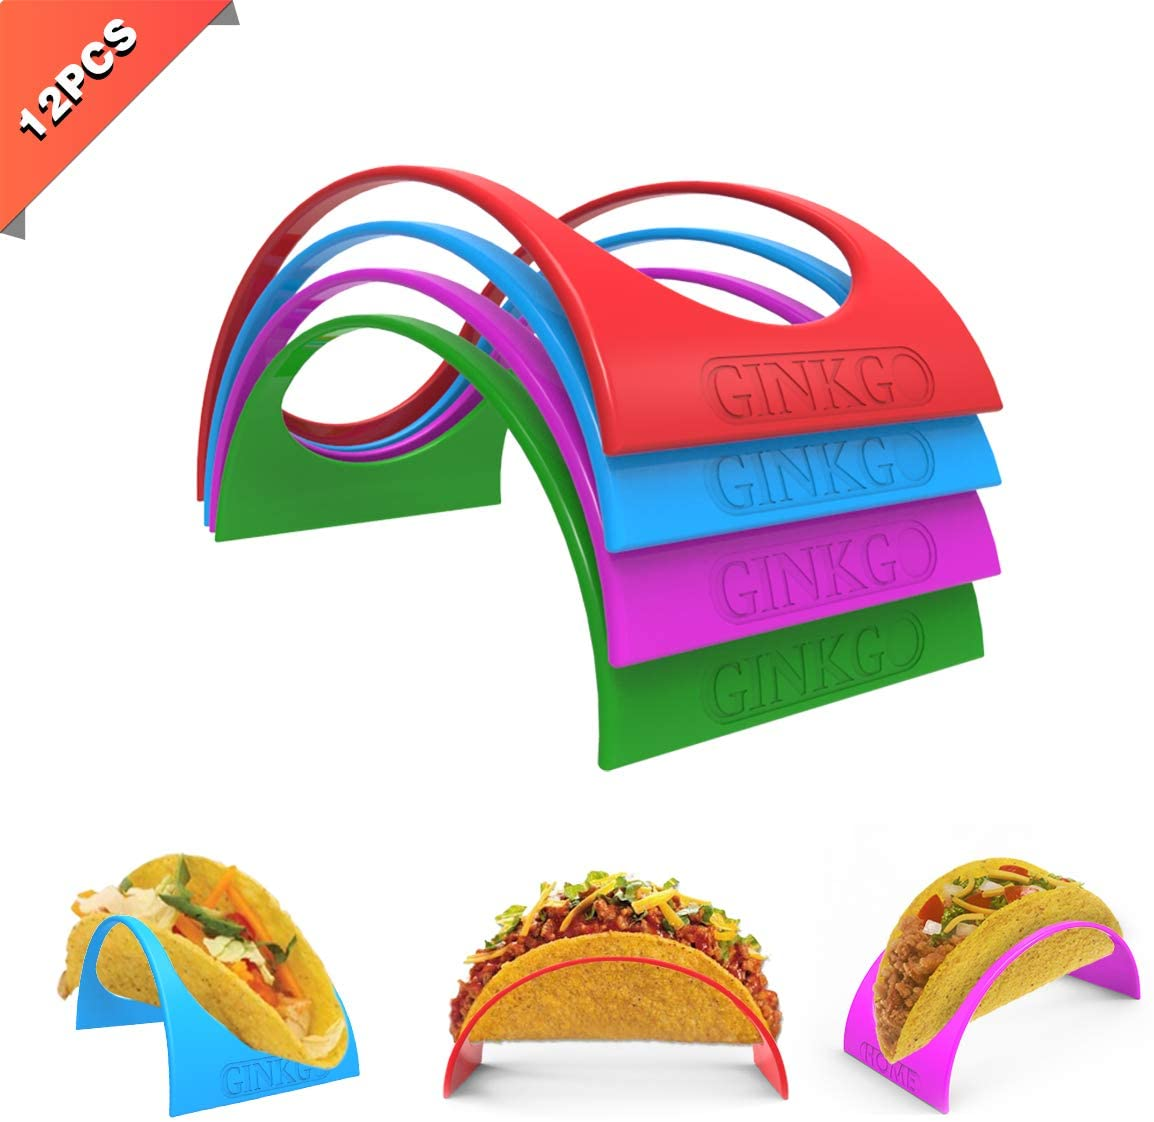 GINKGO Taco Holder Stand up Set of 12, 4 Colorful Plastic Taco Shell Holder Plate Protector Food Holder, Microwave Safe Stands for Soft and Hard Shells